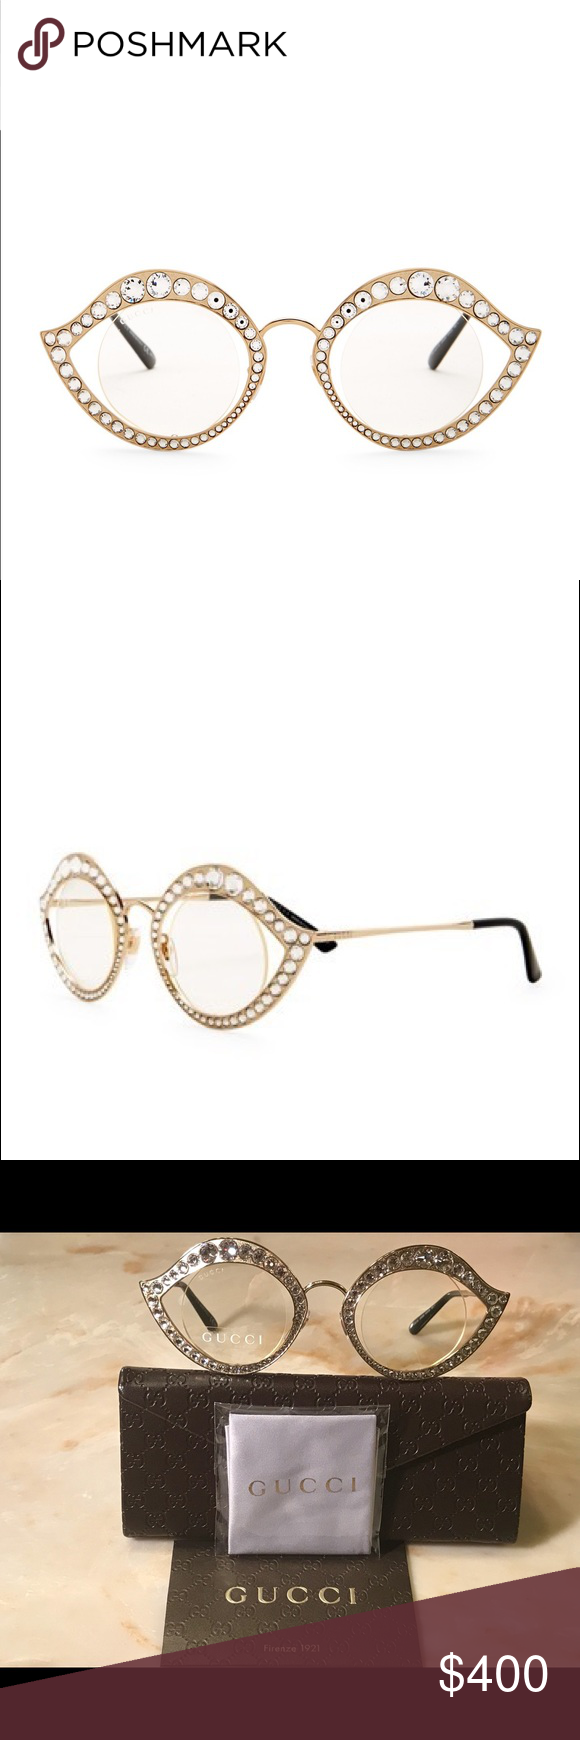 935c2f79fbf Gucci GG4287 S Lips Cat Eye Crystals Sunglasses Authentic Gender  Women s -  Series